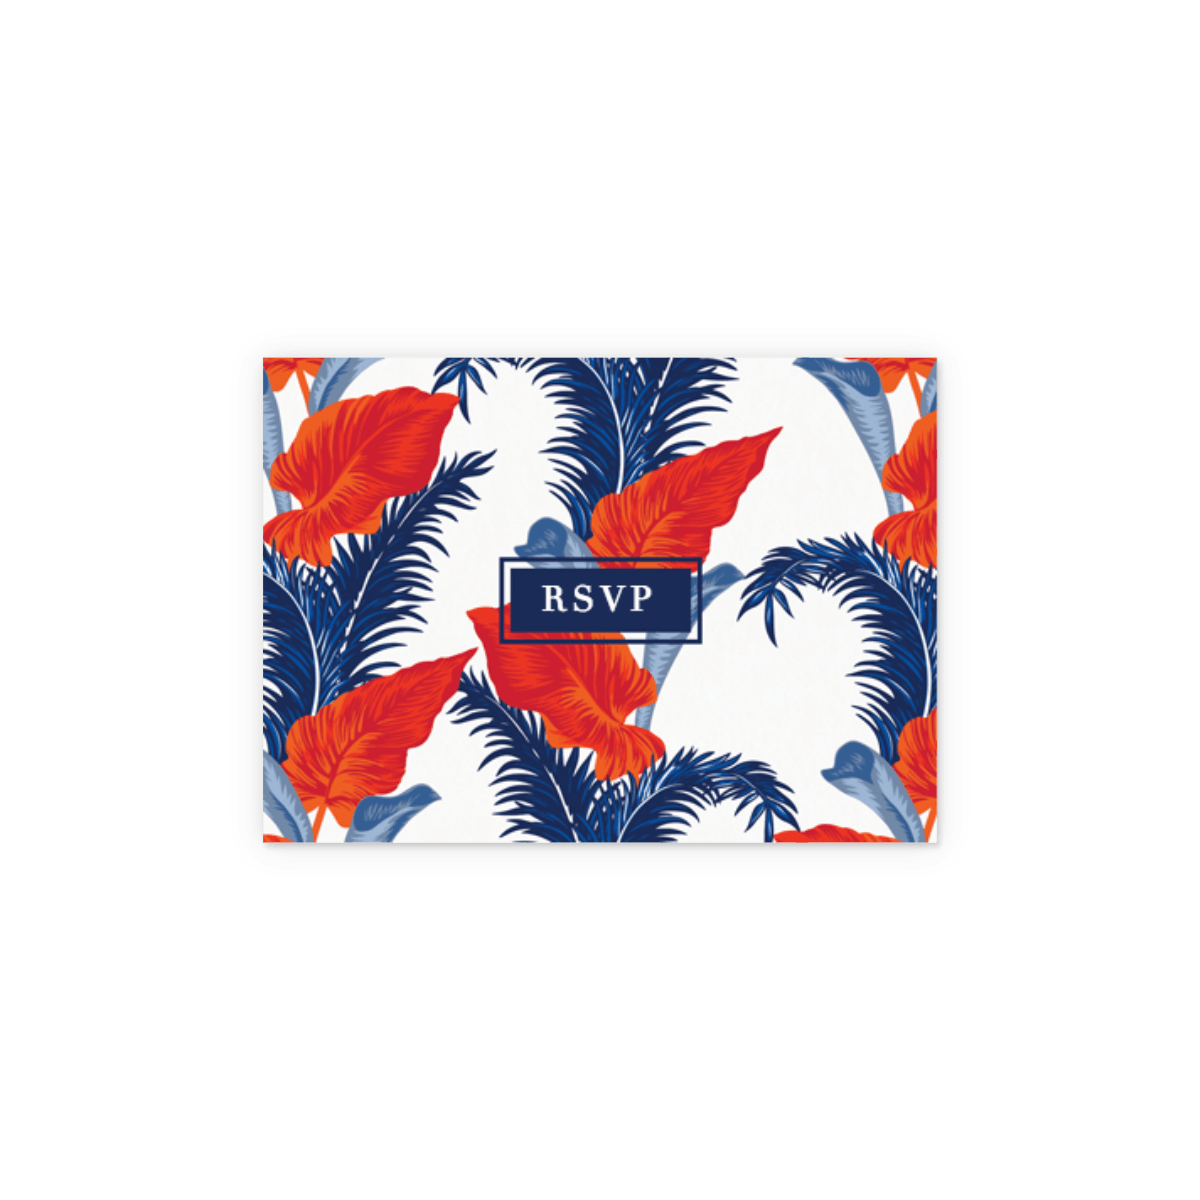 Https%3a%2f%2fwww.papier.com%2fproduct image%2f39605%2f13%2fred blue palms 9767 rsvp ruckseite 1530179643.png?ixlib=rb 1.1